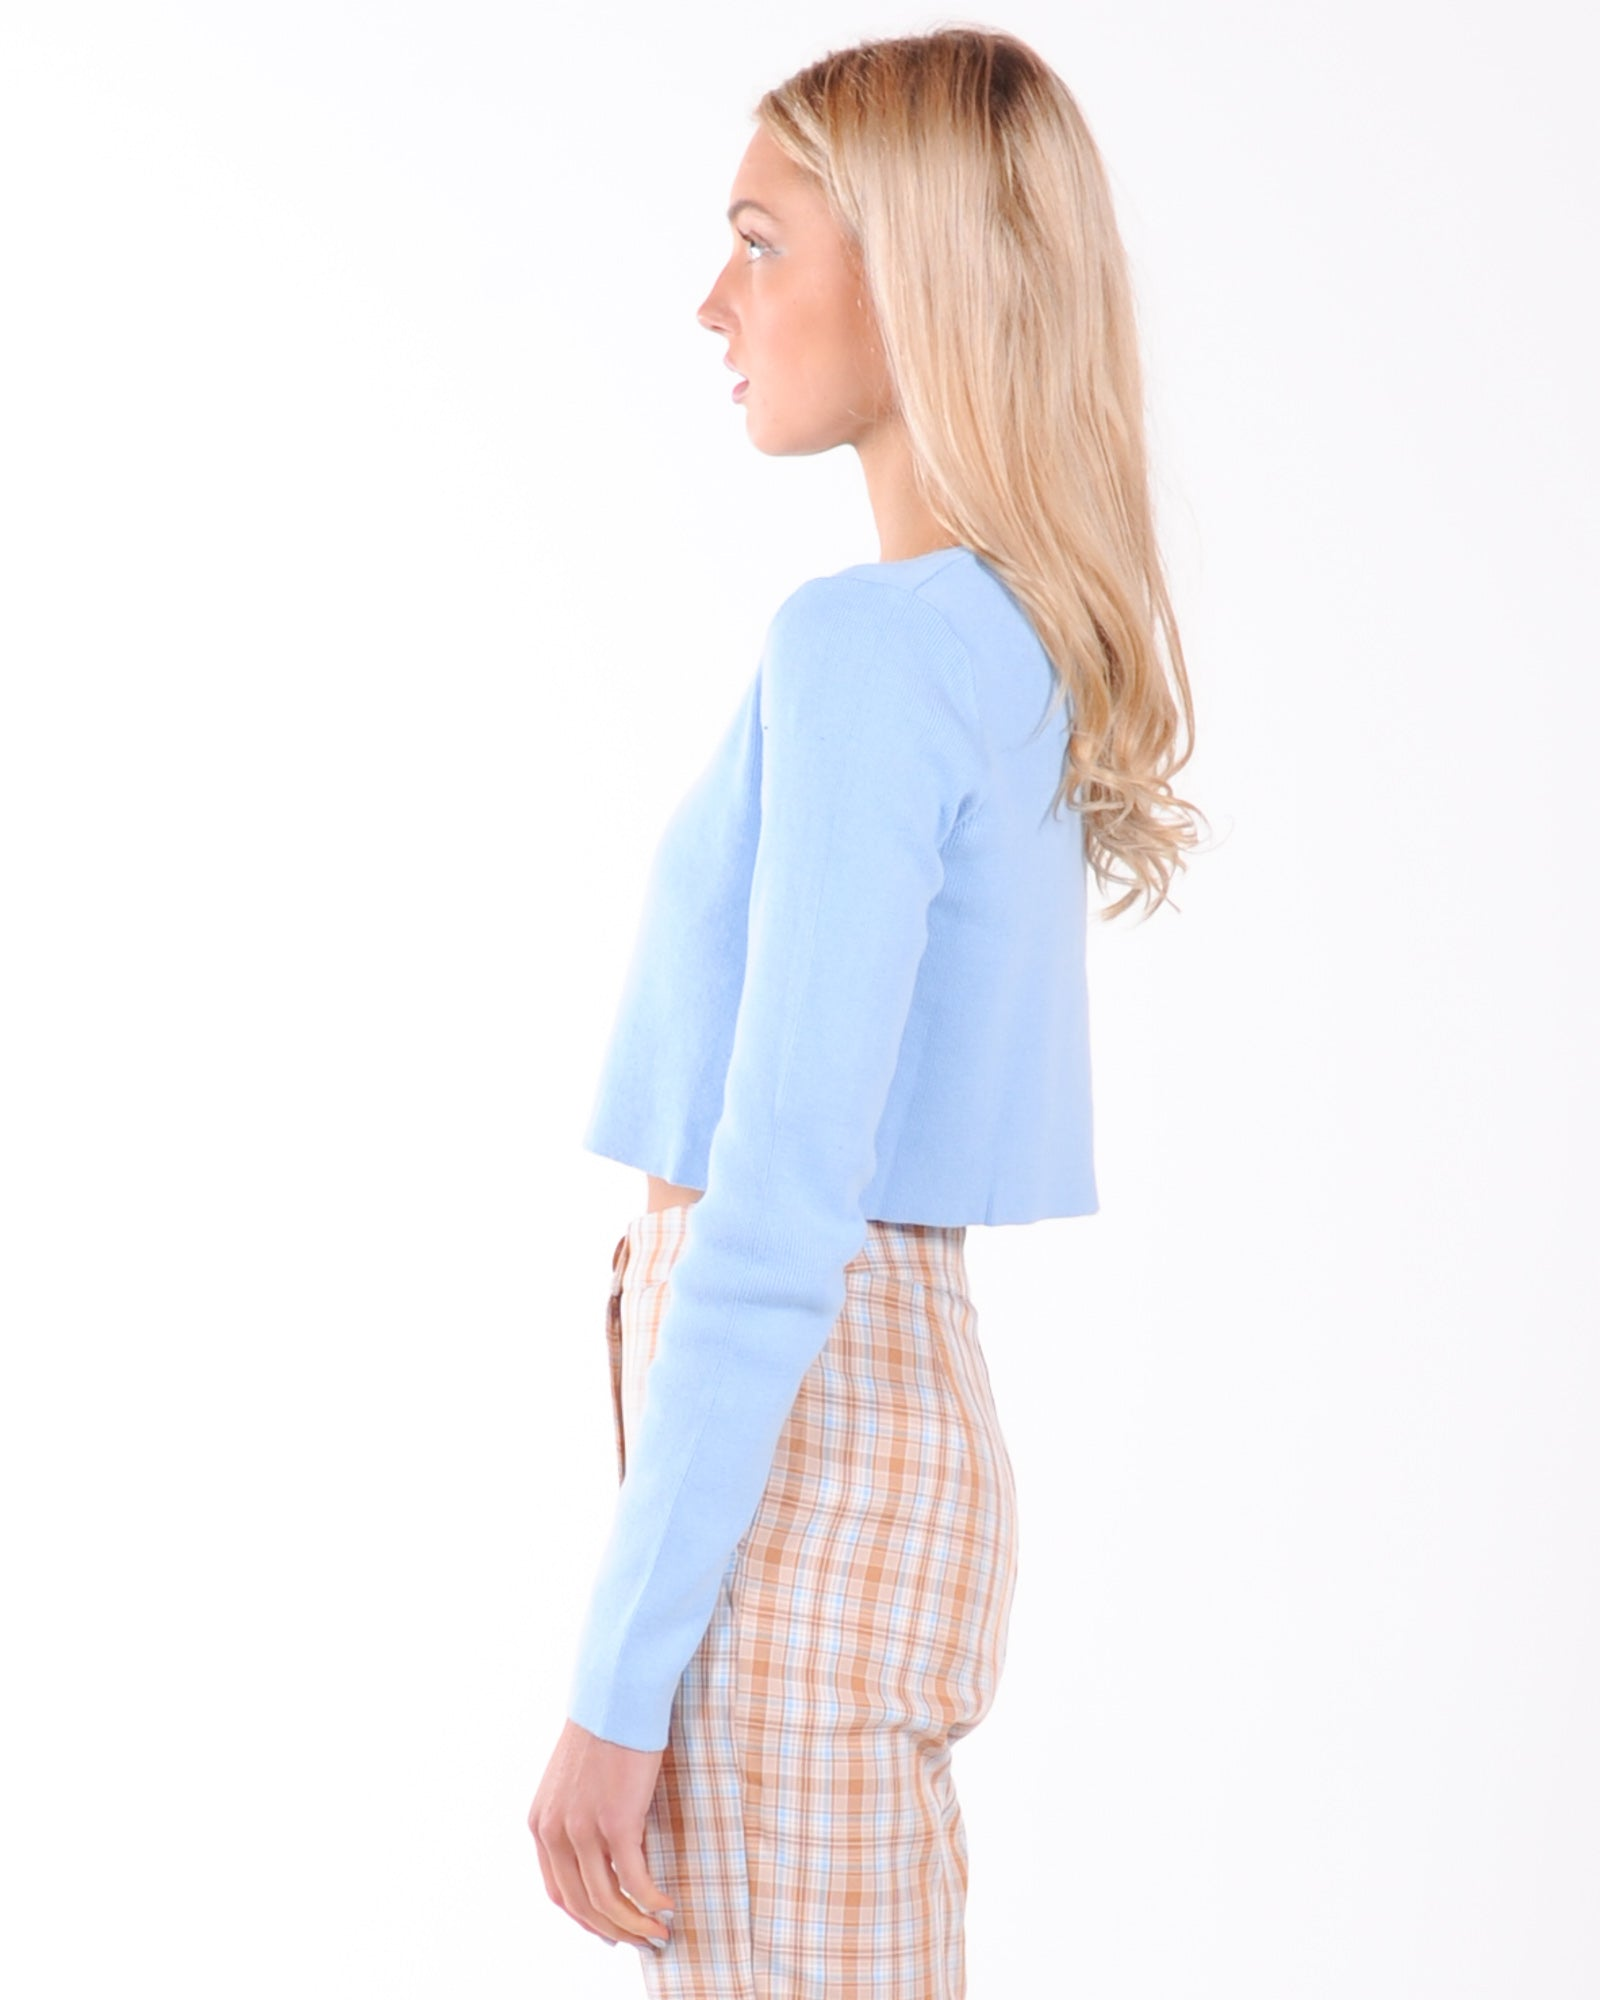 The New Rules Cardigan - Blue